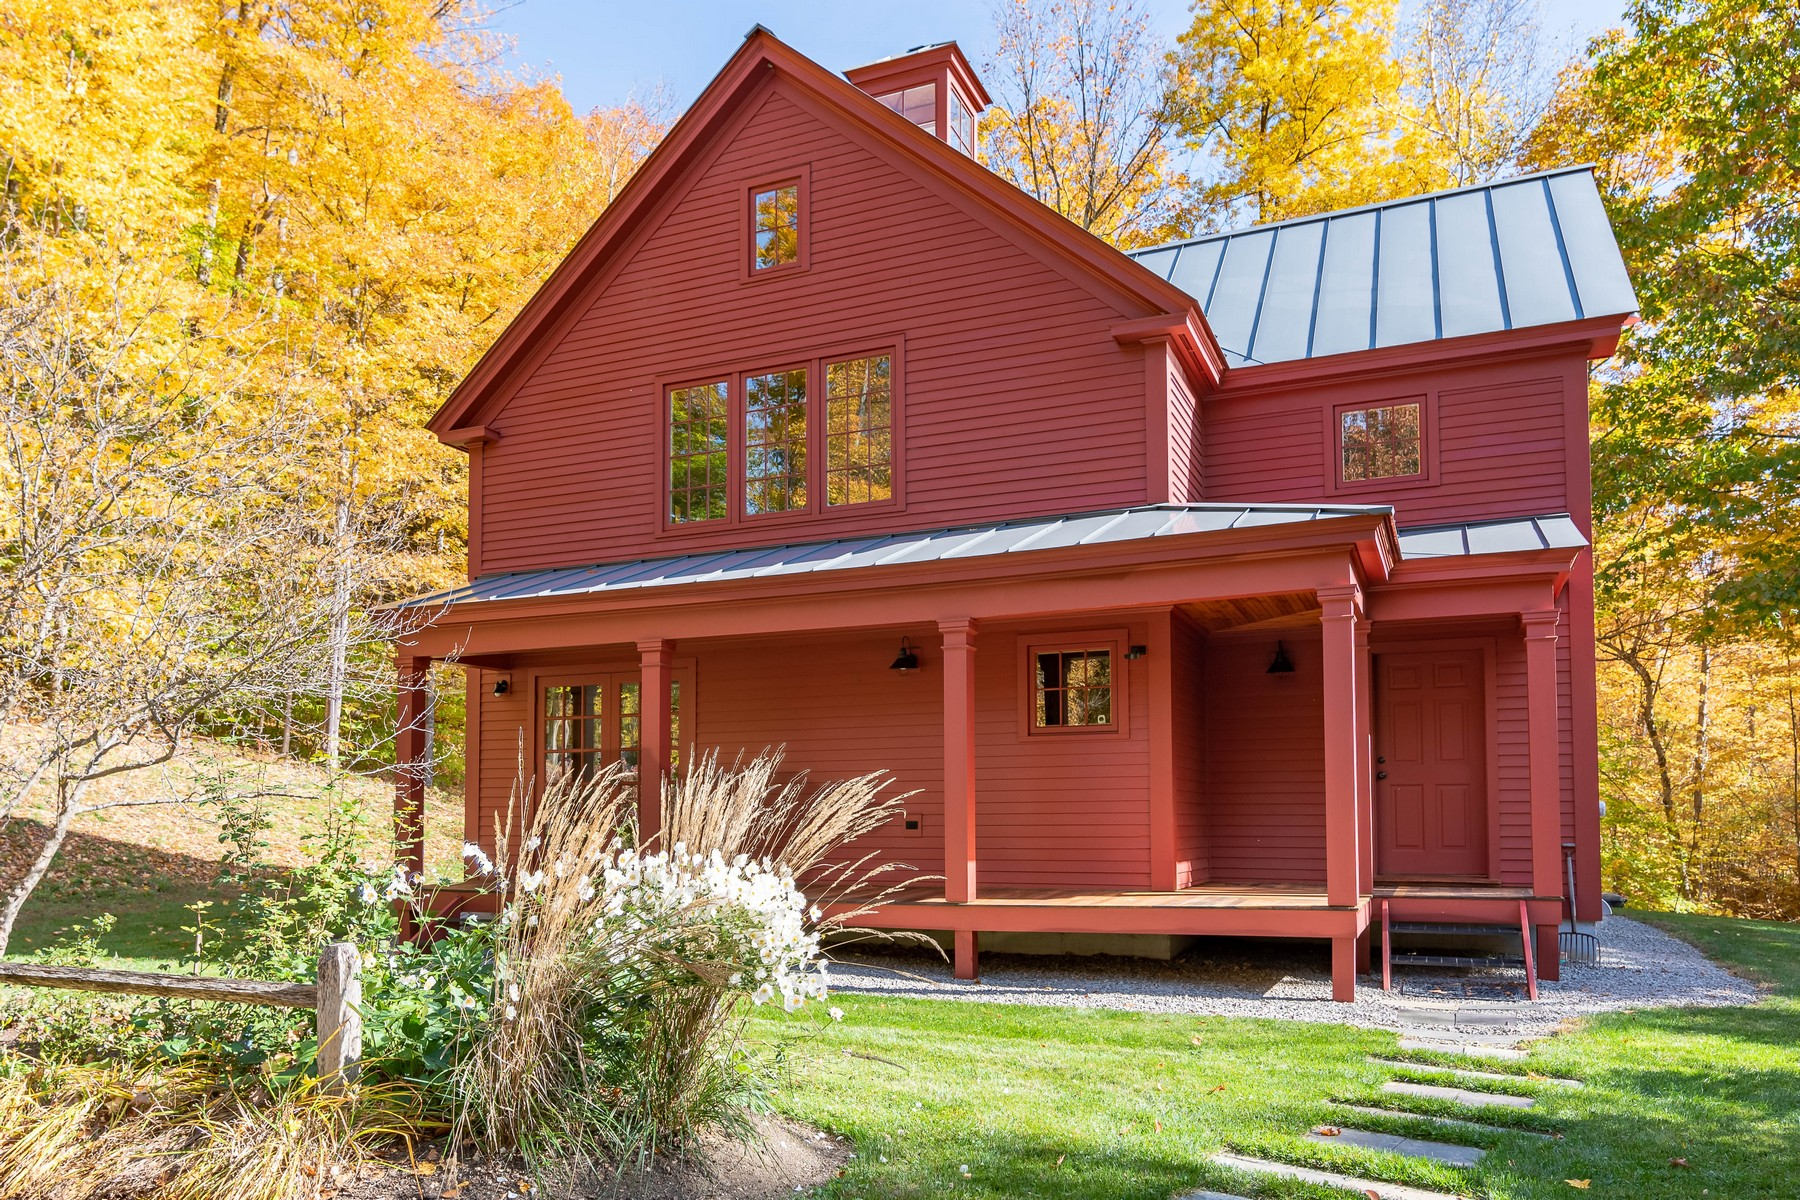 Single Family Homes for Sale at 4563 Route 315, Rupert 4563 Route 315 Rupert, Vermont 05761 United States